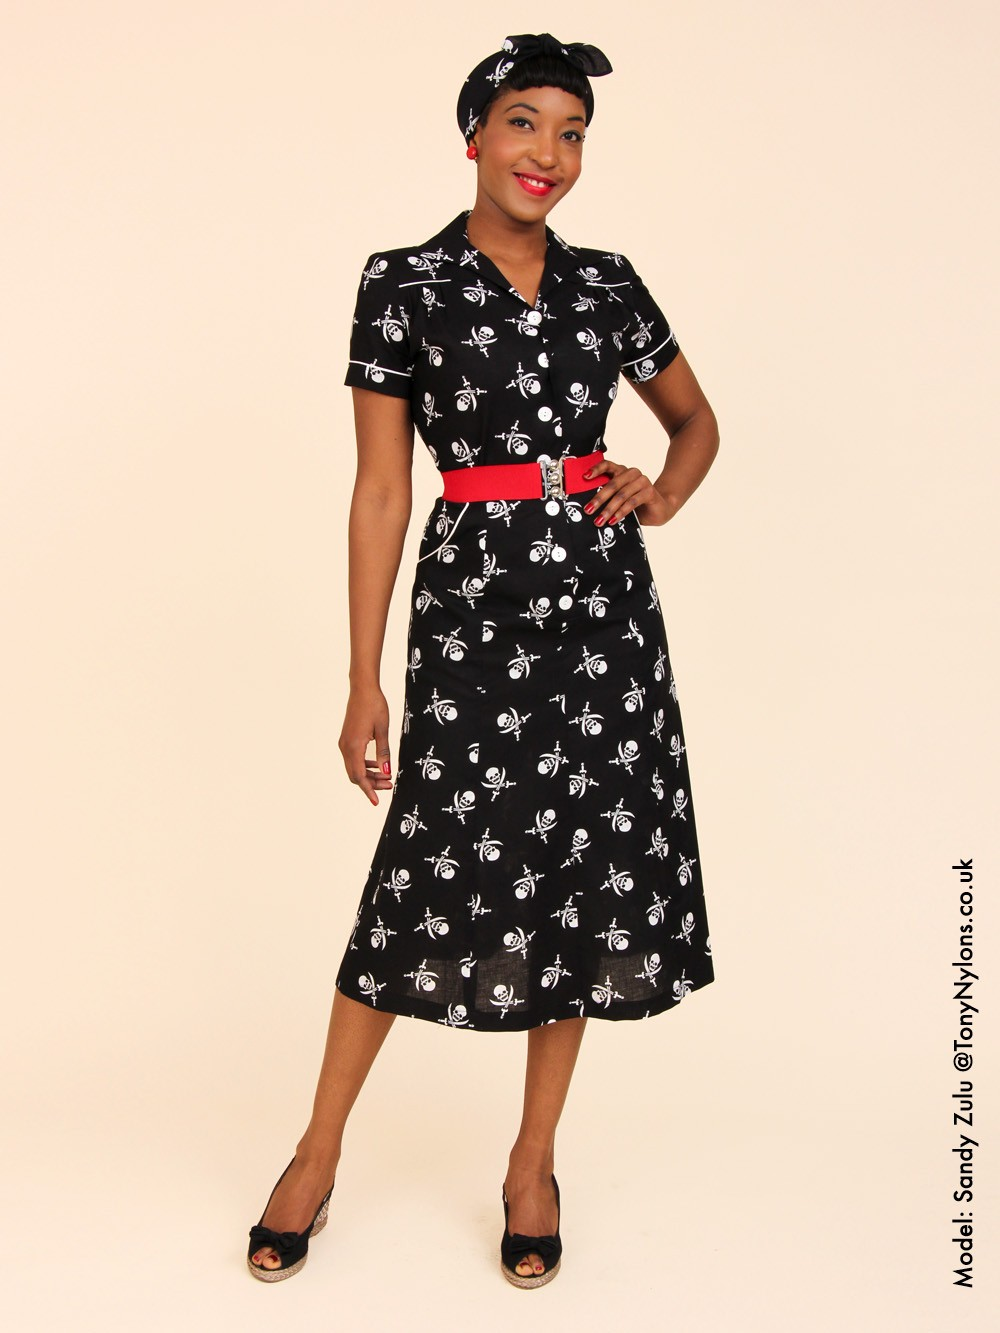 1940s Fashion: 1940s Style Tea Dress Pirate From Vivien Of Holloway